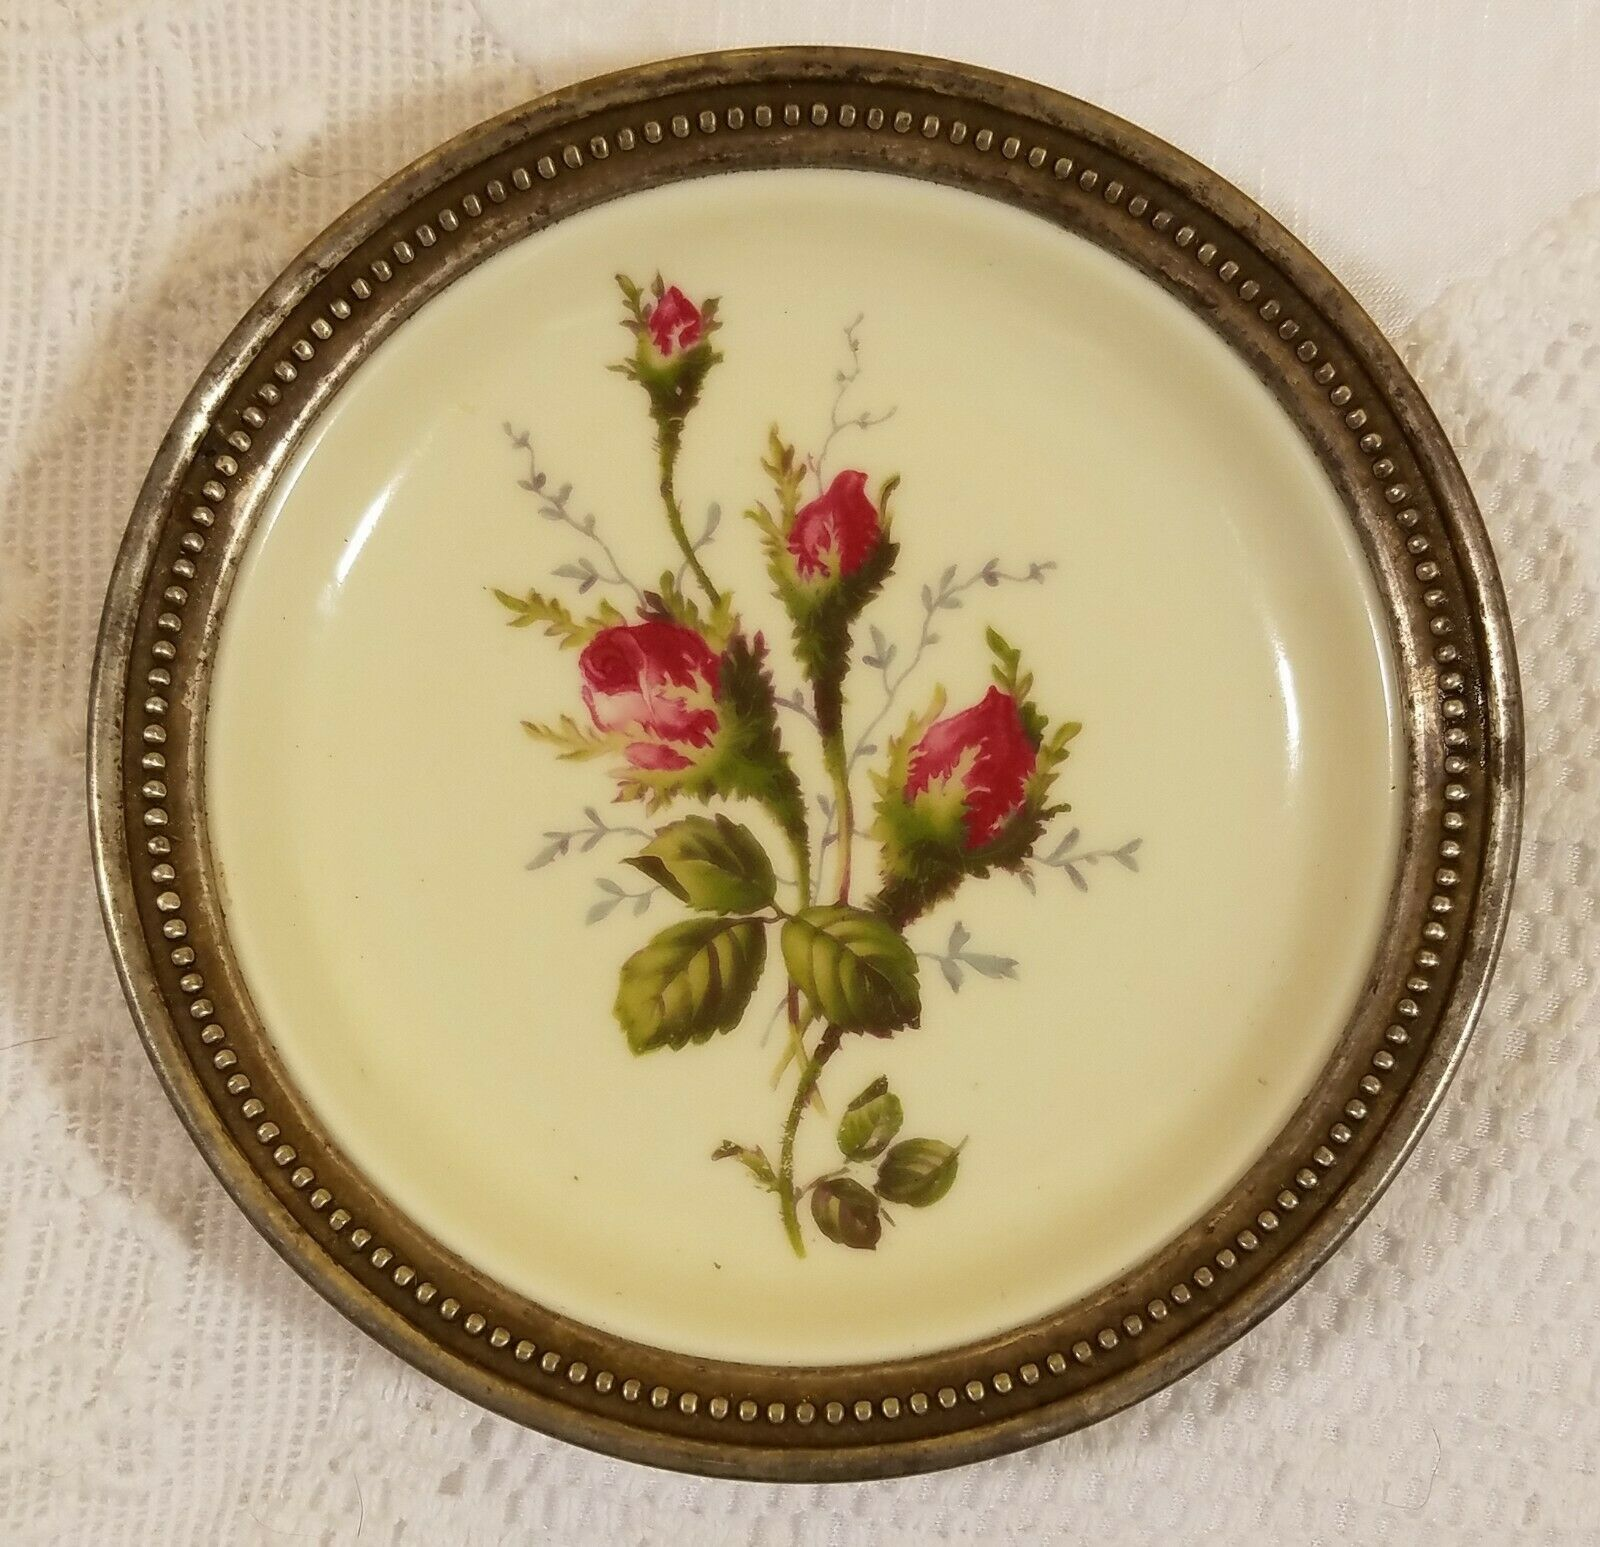 Primary image for Rosenthal Moss Rose Bahnhof Selb Germany Porcelain Plate with Sterling Trim 4""